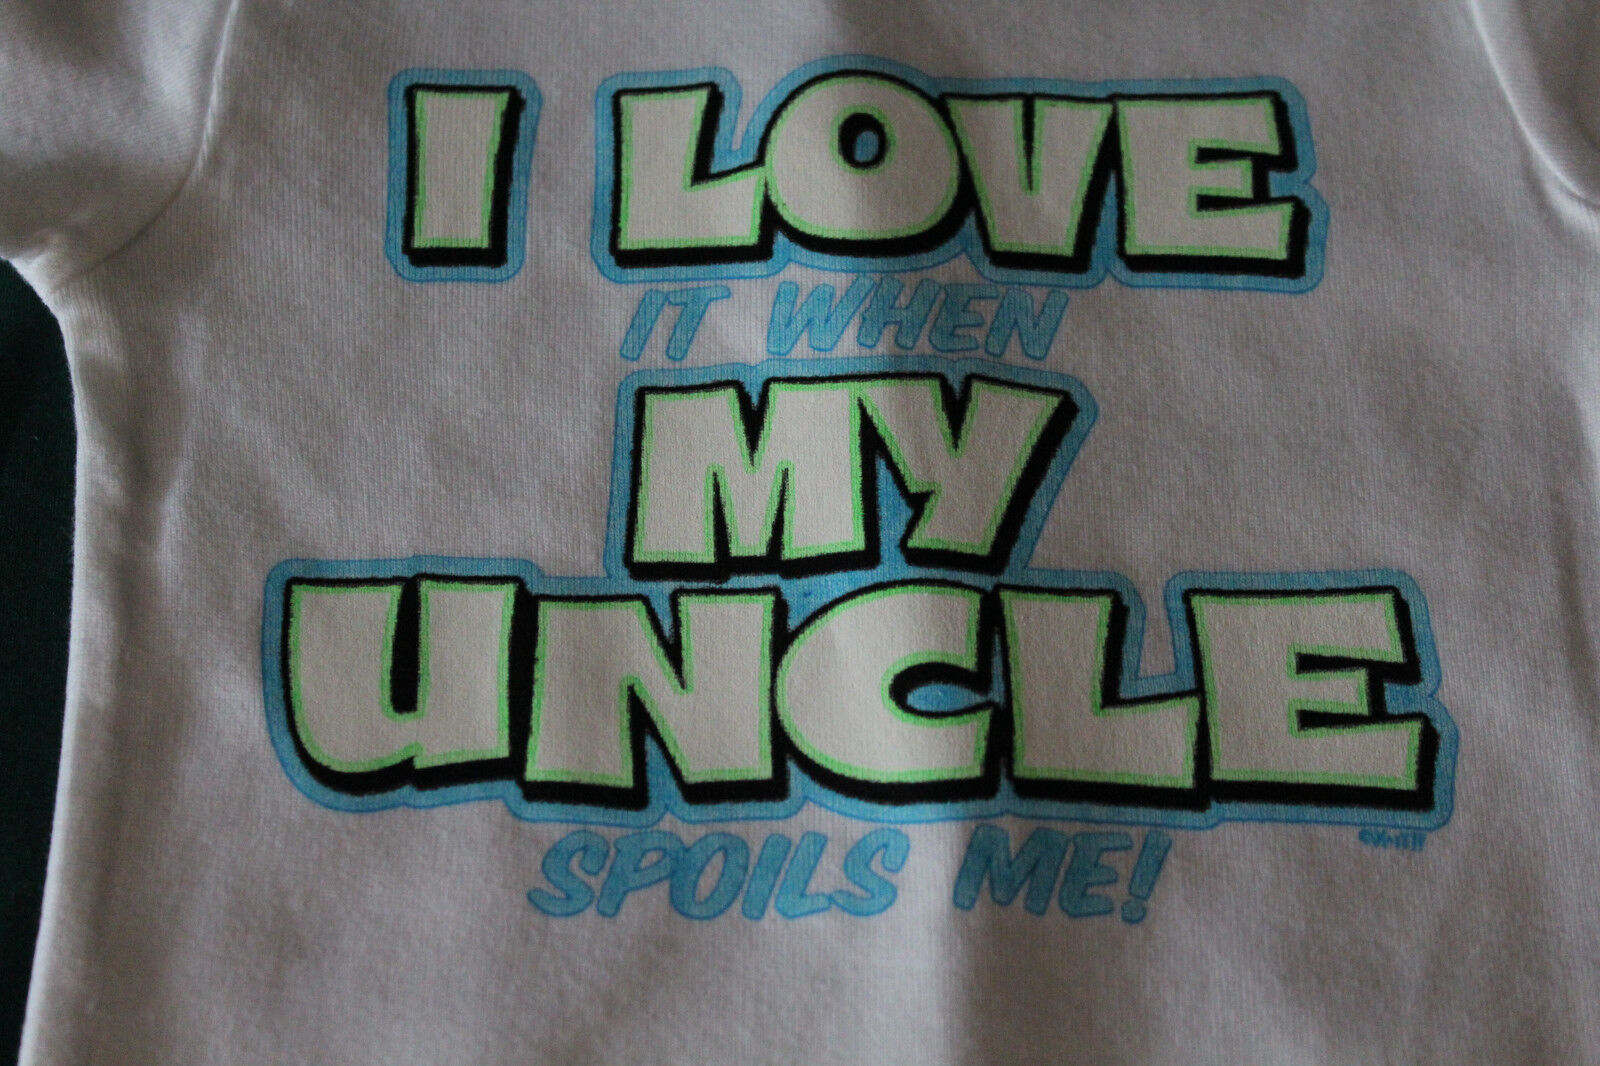 I LOVE it when MY UNCLE funny t-shirt tee boy girl graphic y